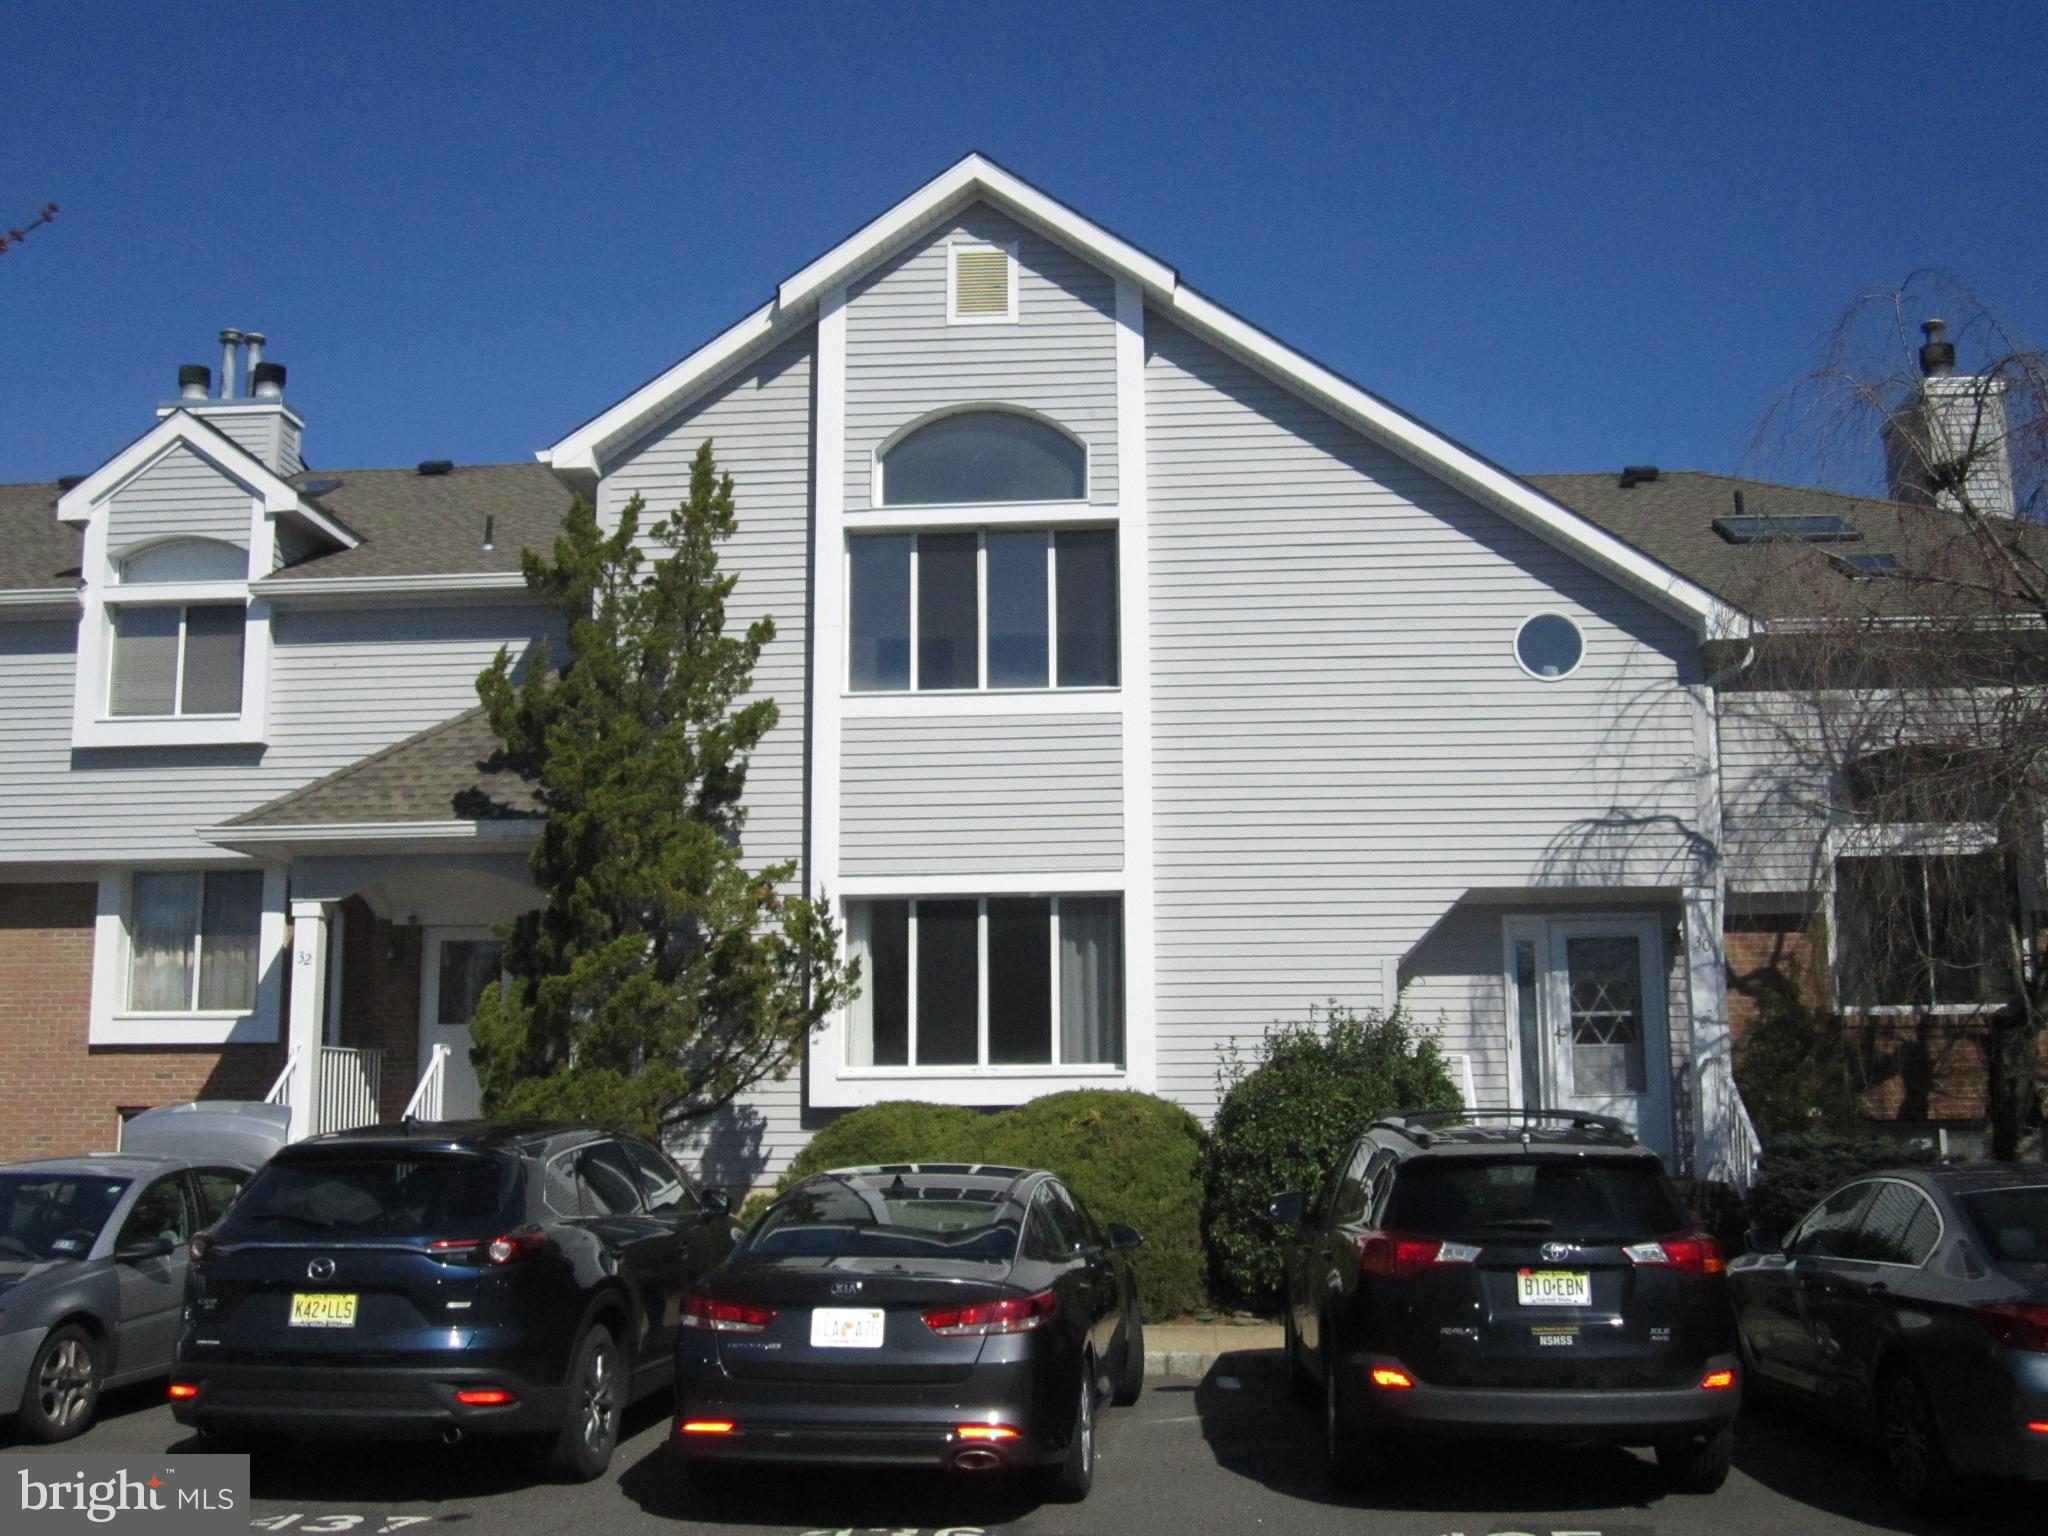 31 DAWN COURT, MONMOUTH JUNCTION, NJ 08852